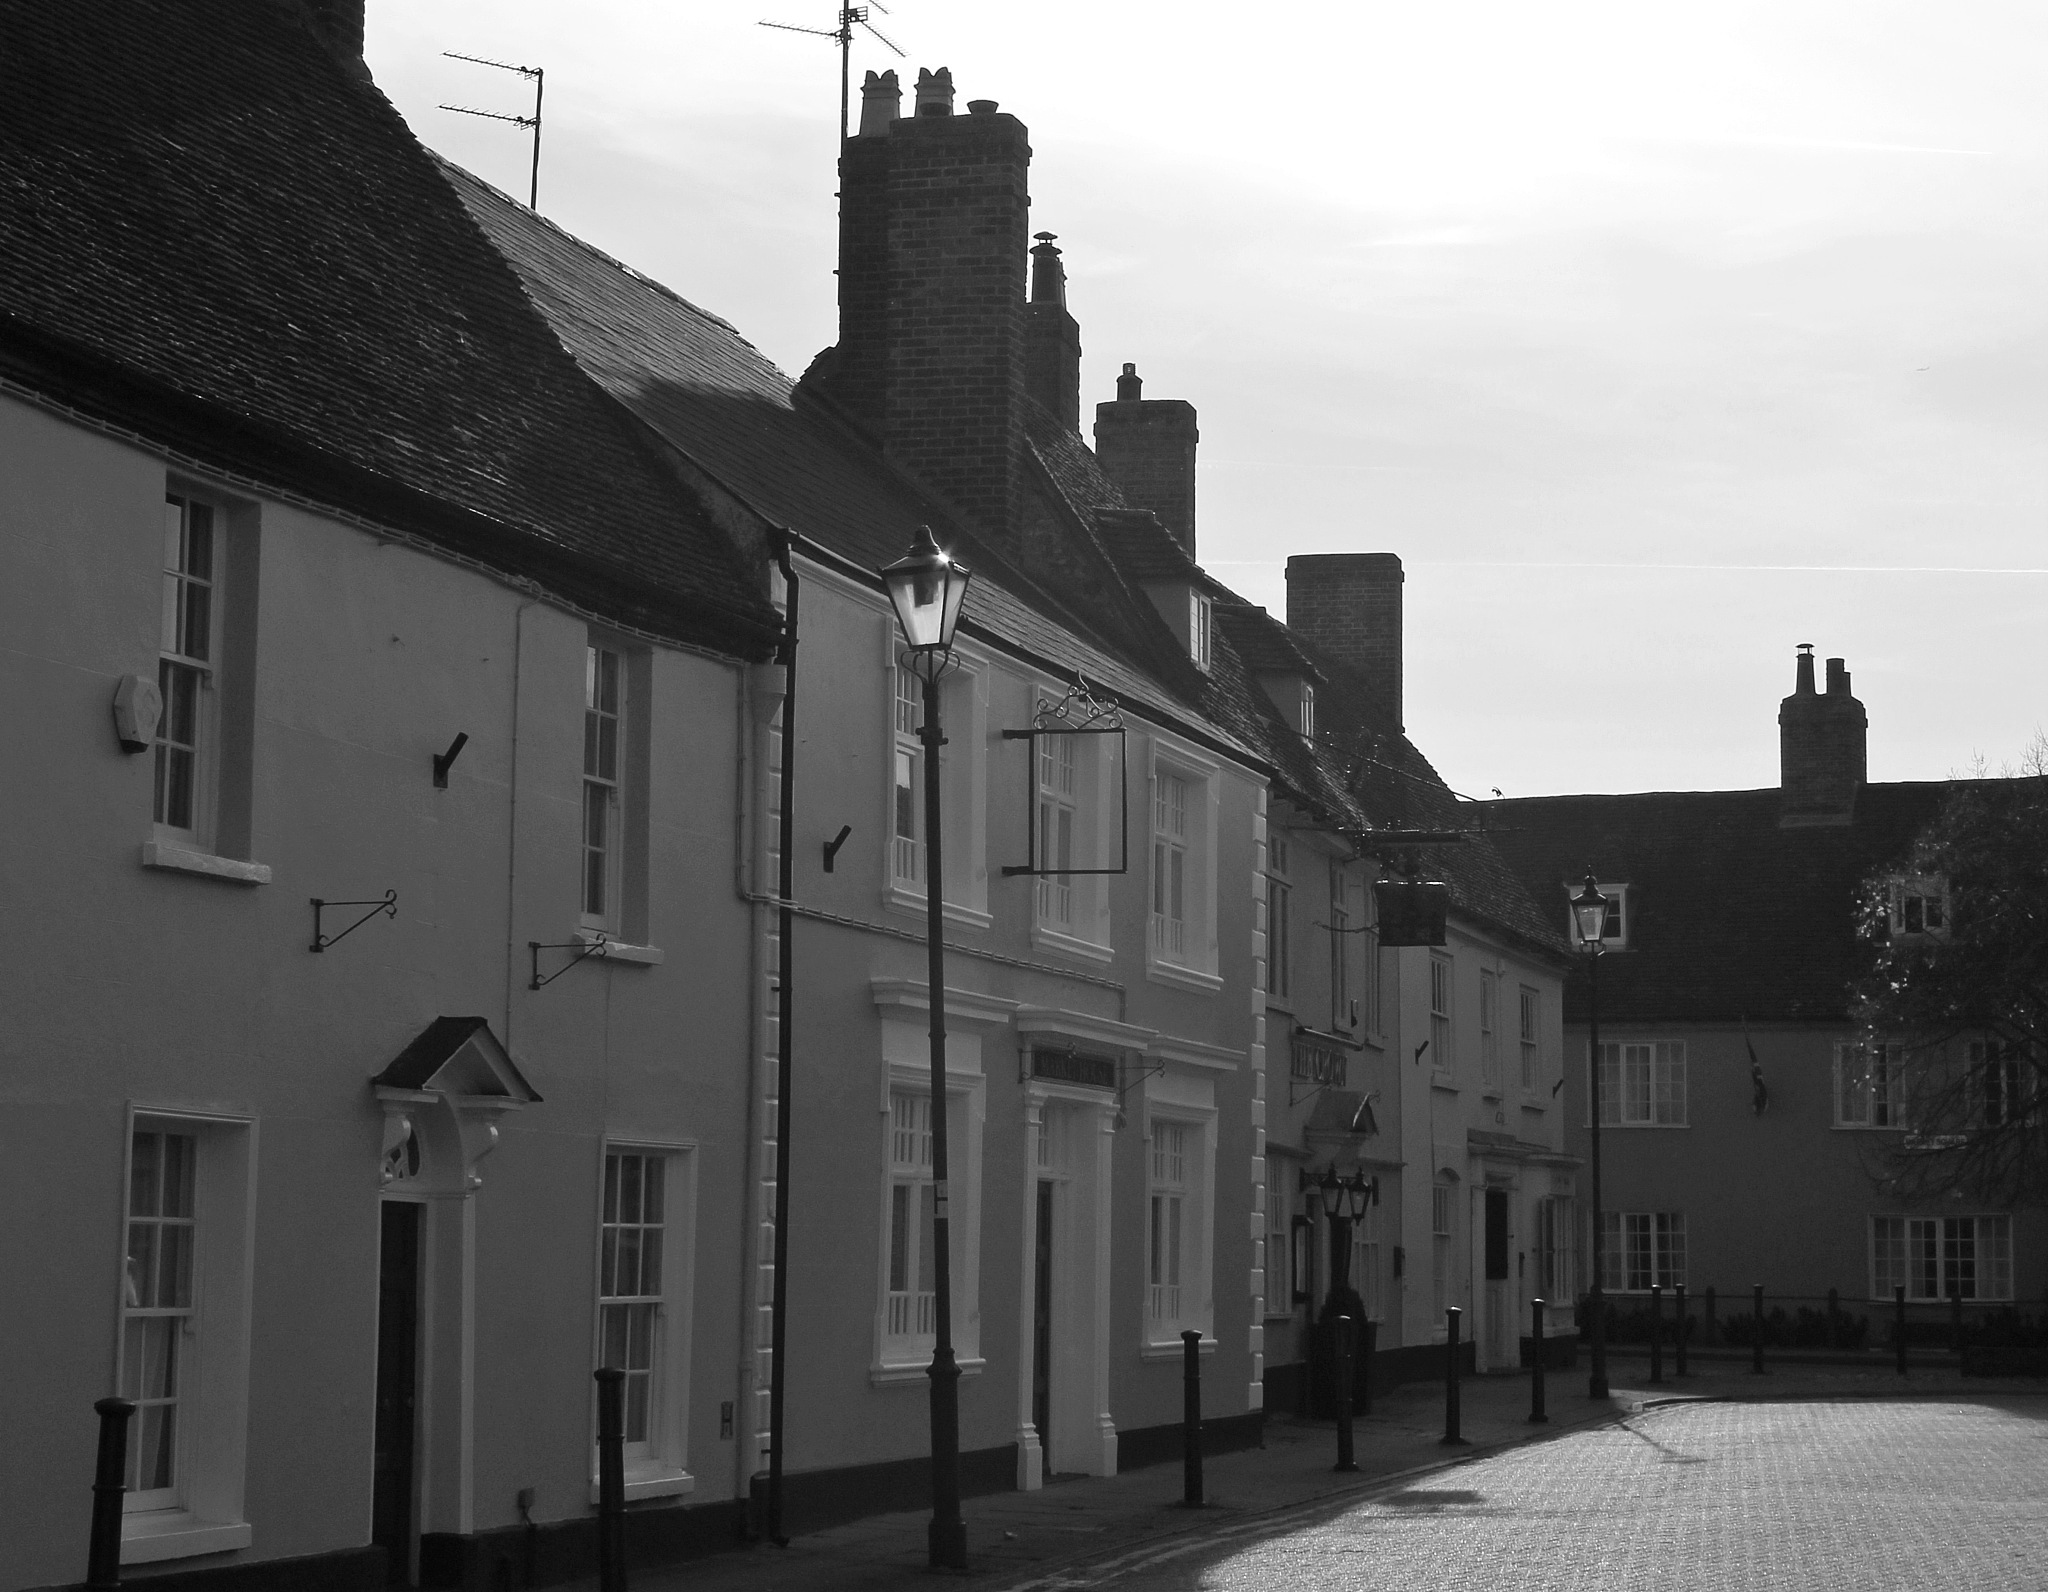 the houses of Stony Stratford by Jane Rue